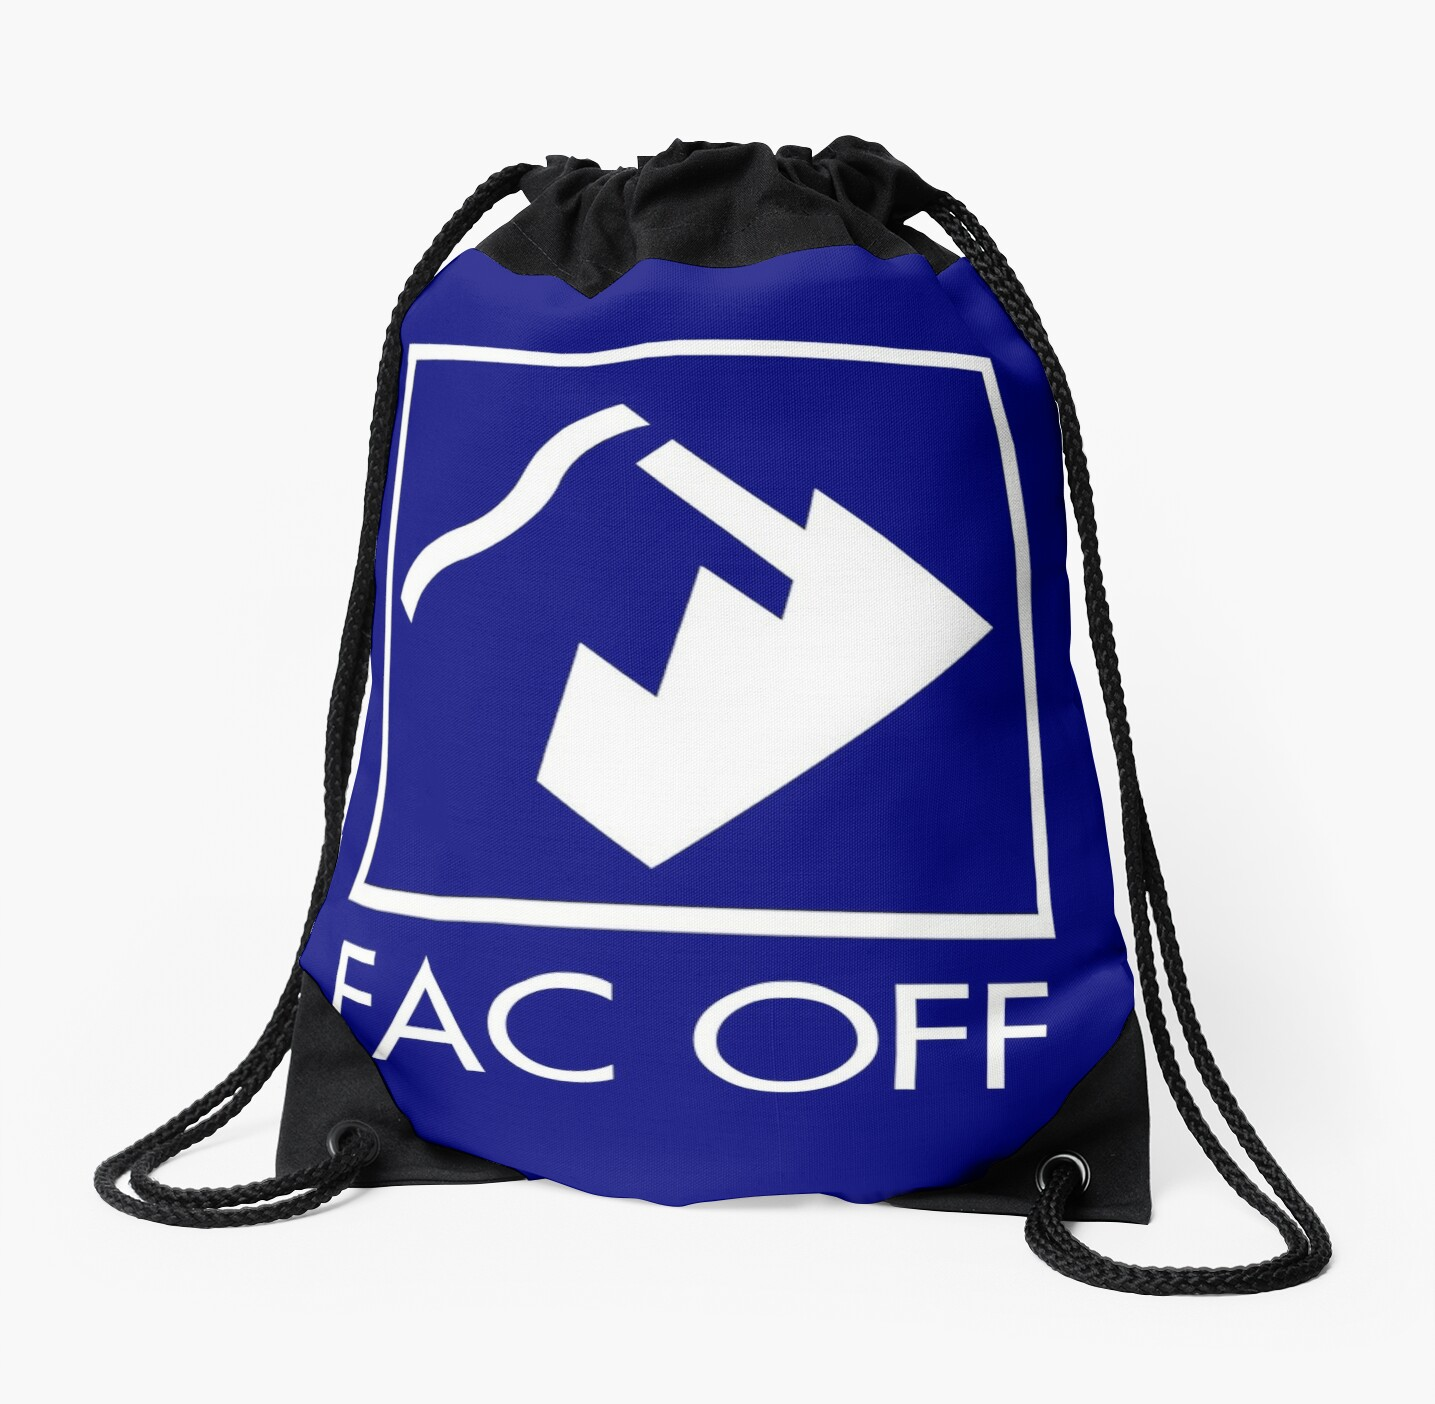 Factory Records - FAC OFF by congohammer